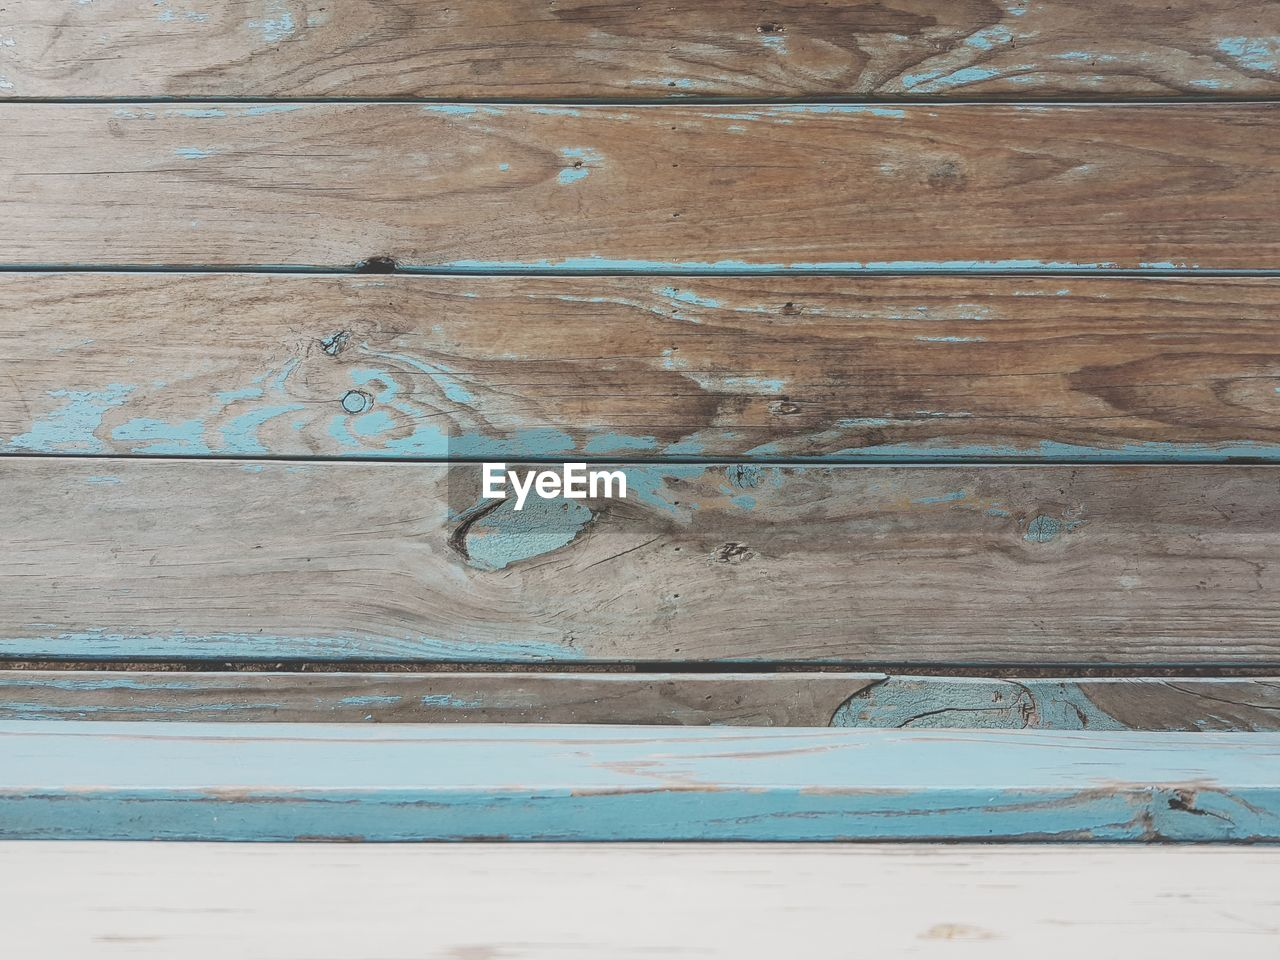 wood - material, full frame, backgrounds, pattern, wood, no people, close-up, indoors, textured, plank, blue, brown, day, hardwood floor, high angle view, flooring, directly above, wood grain, old